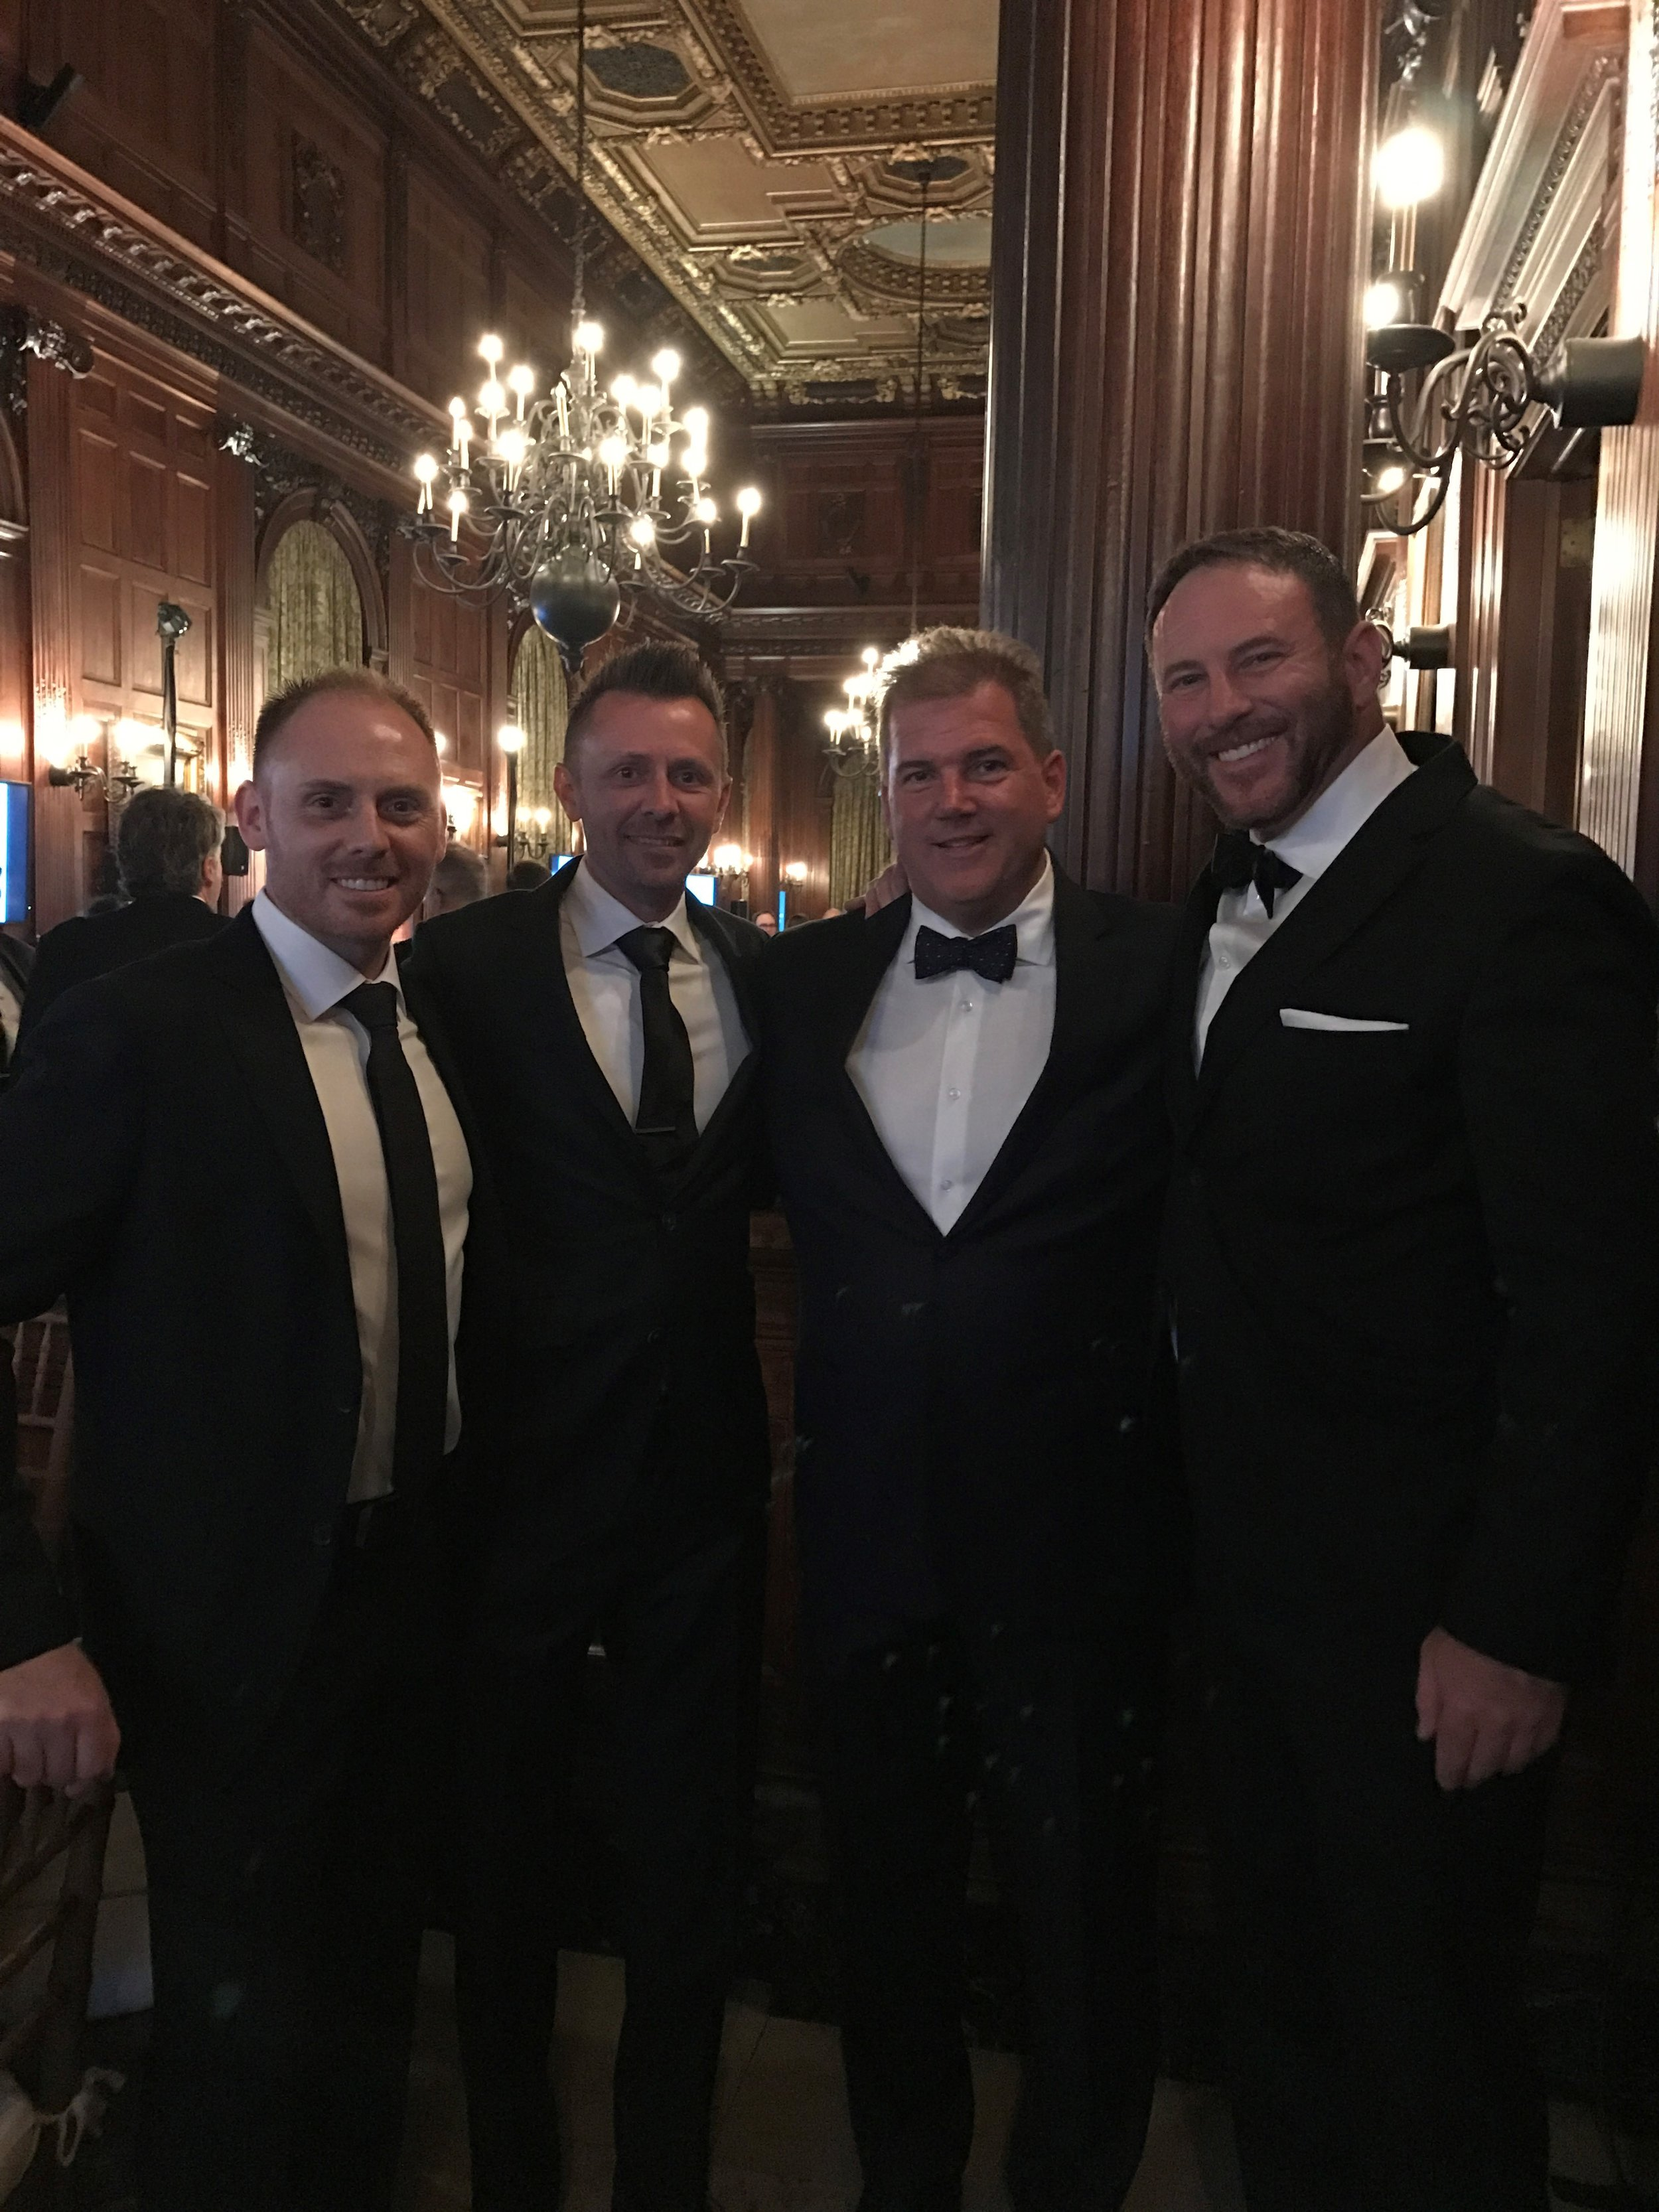 The Institute of Classical Architecture & Art held their 2017 Arthur Ross Awards at the University Club of New York on May 1st. The Awards were established in 1982 to recognize and celebrate excellence in the classical architectural tradition.  Featured in this photo are Frank and Chris Kane of Kane Brothers, Inc.; Bill Drakeley of Drakeley Pool Company and Drakeley Industries; and Wade Weissman of Wade Weissman Architecture, Inc.